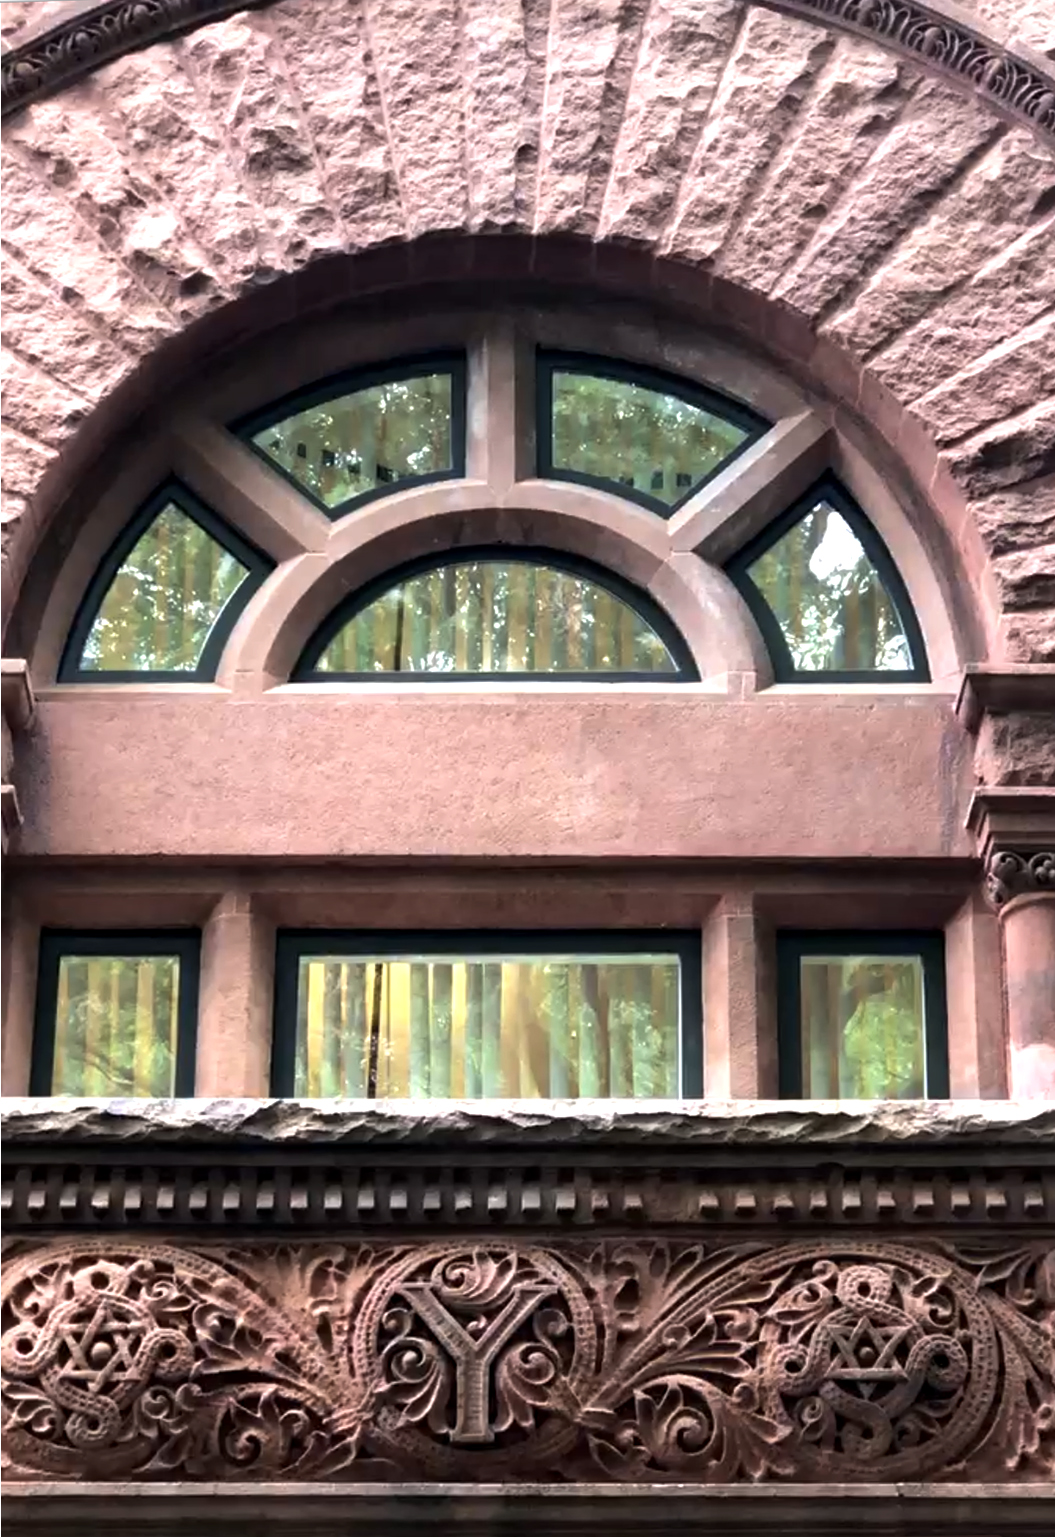 Detail of carved brownstone over the main entrance of 15 Hillhouse Avenue